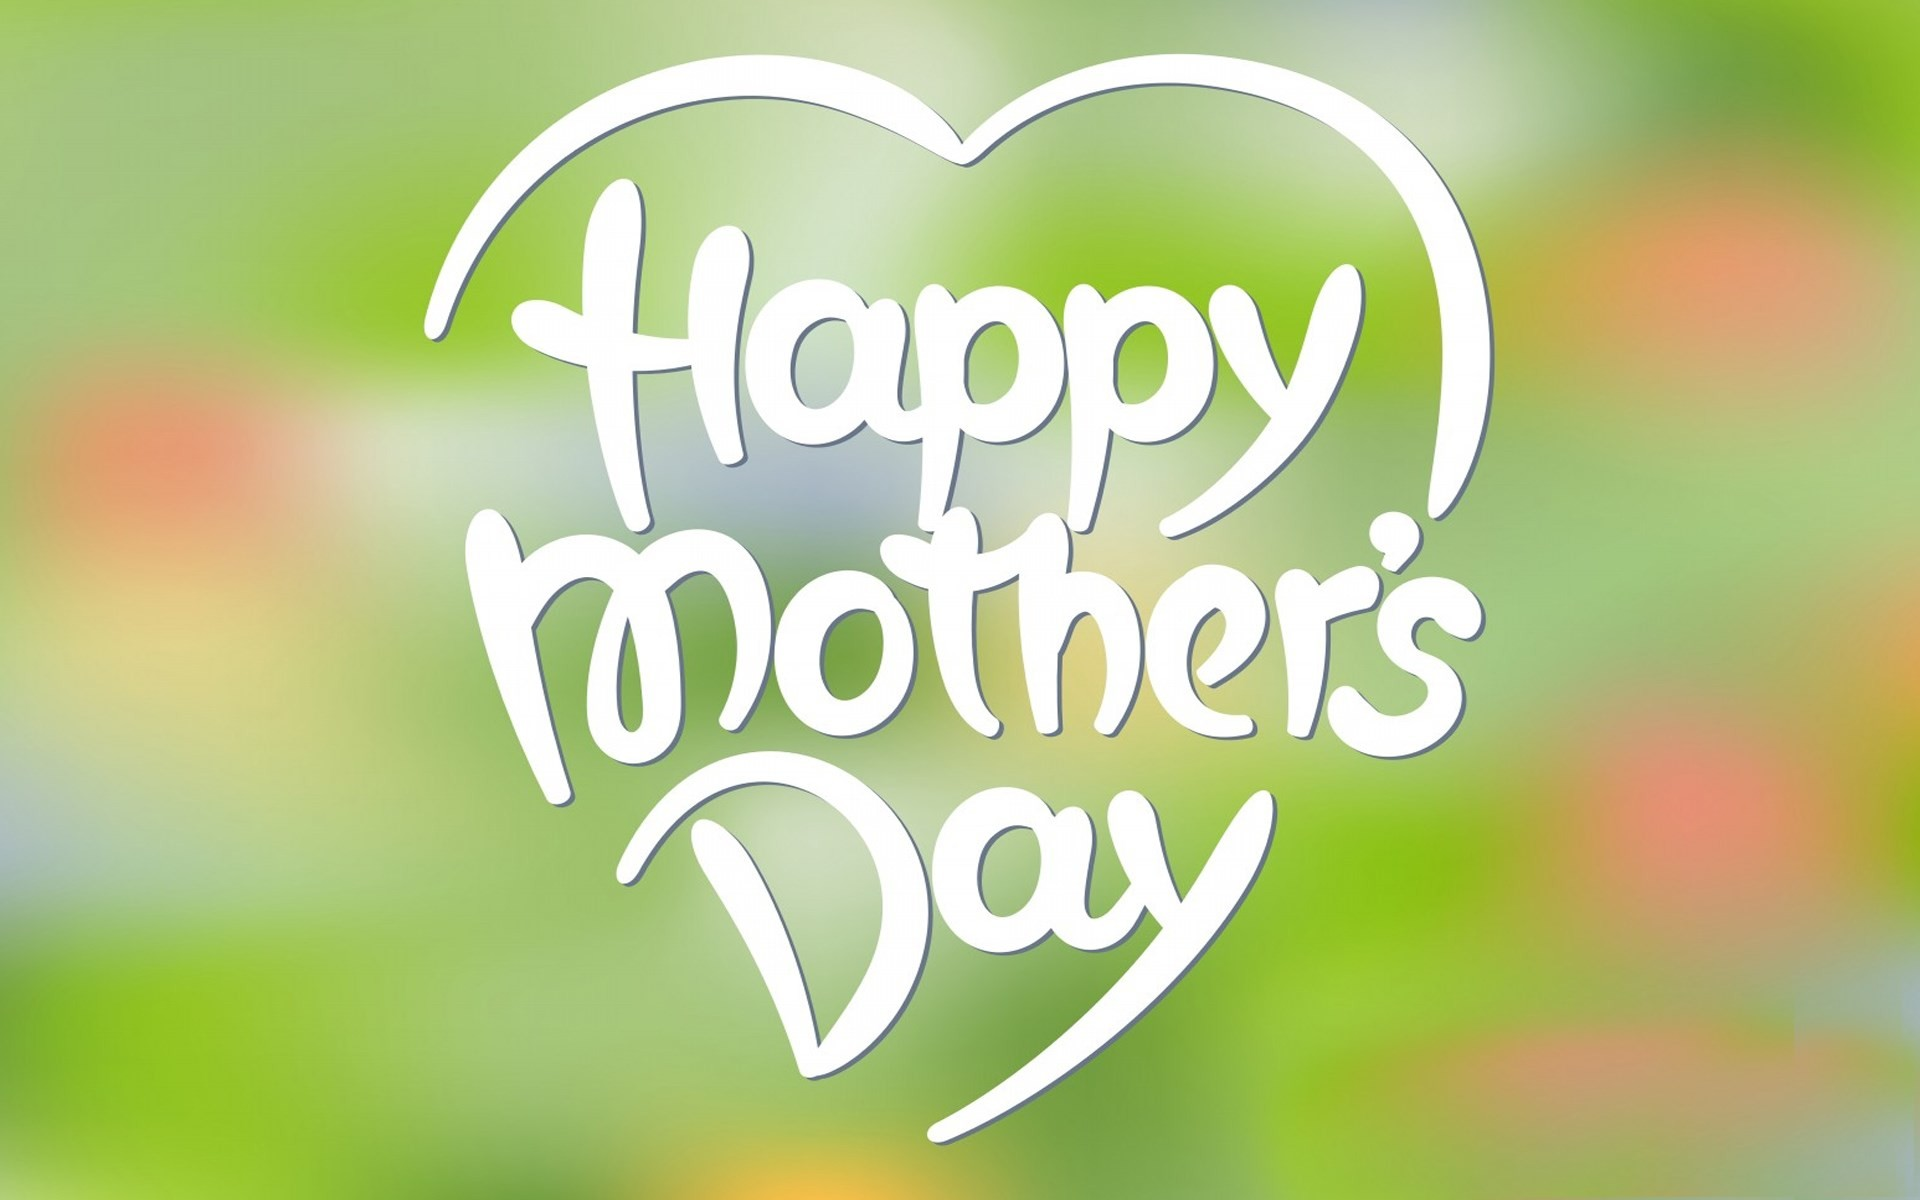 i love you mom wallpaper free download